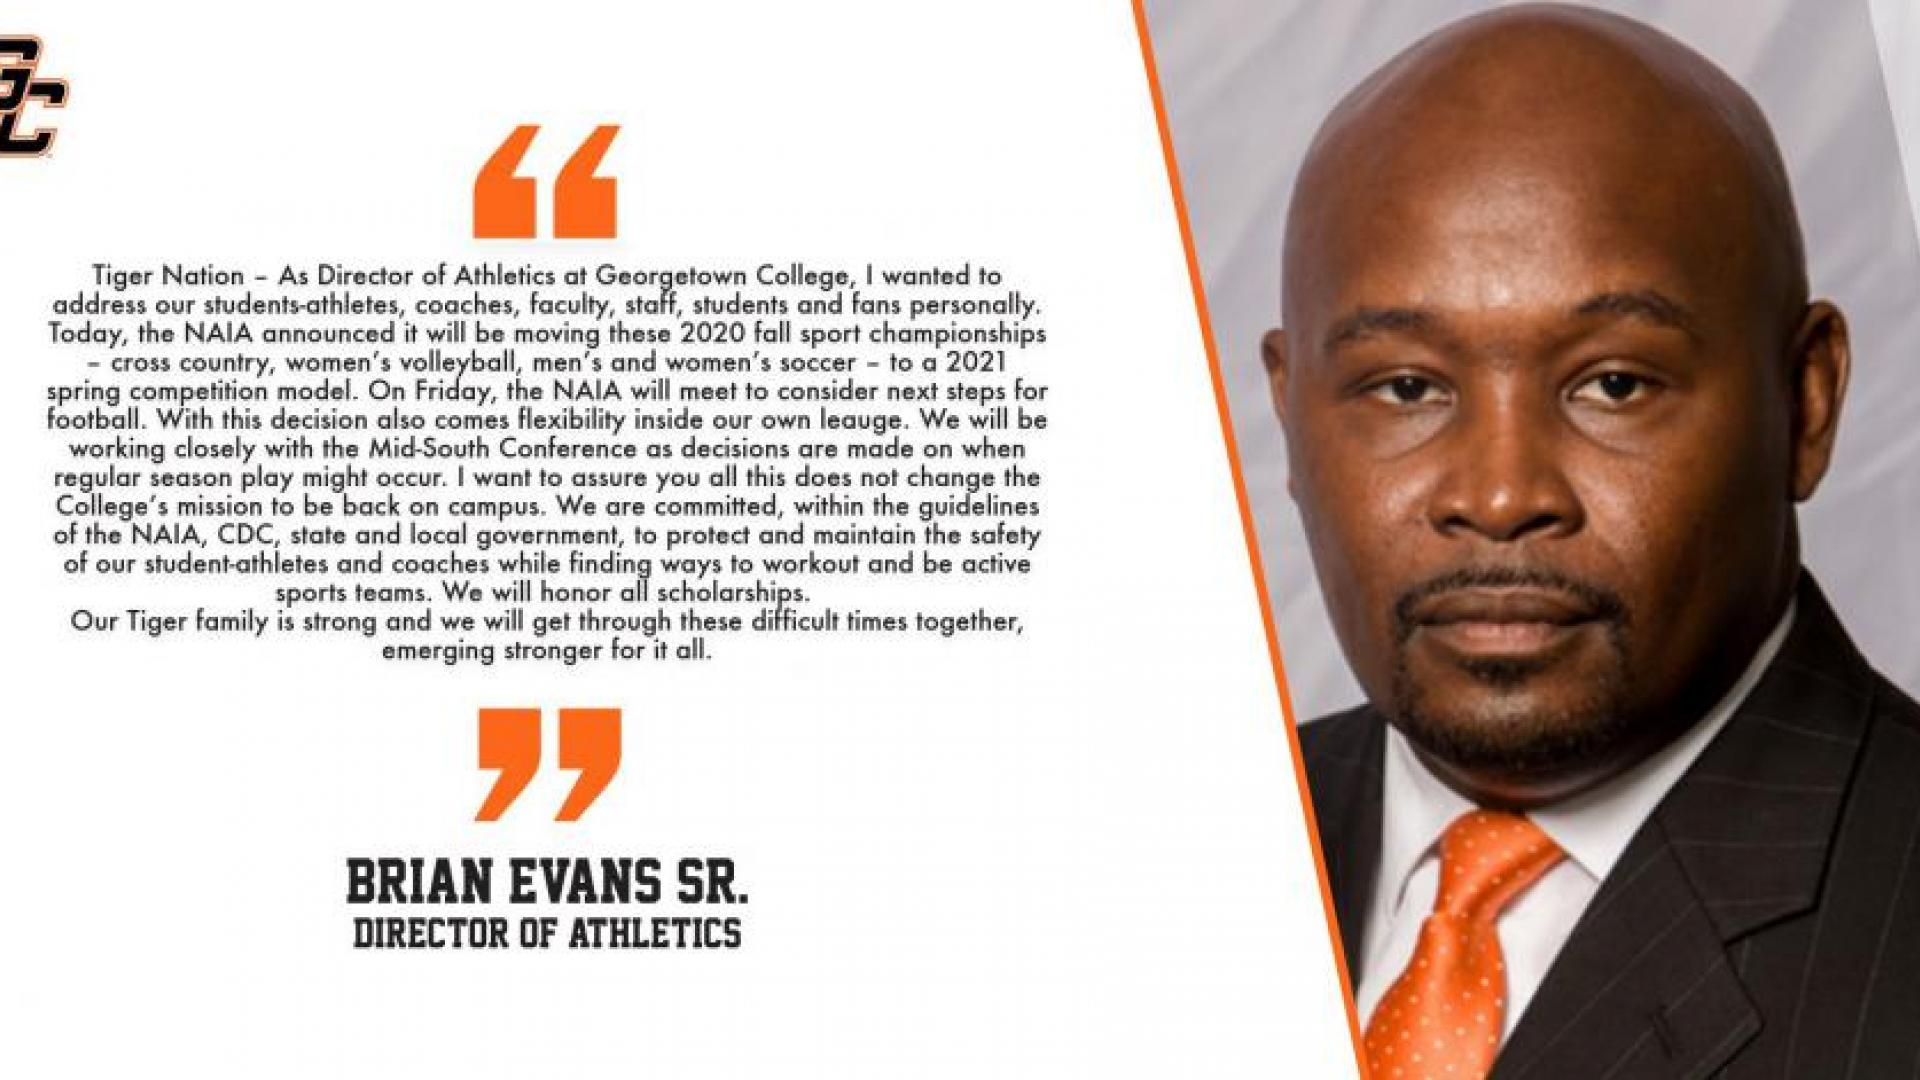 Message from Brian Evans